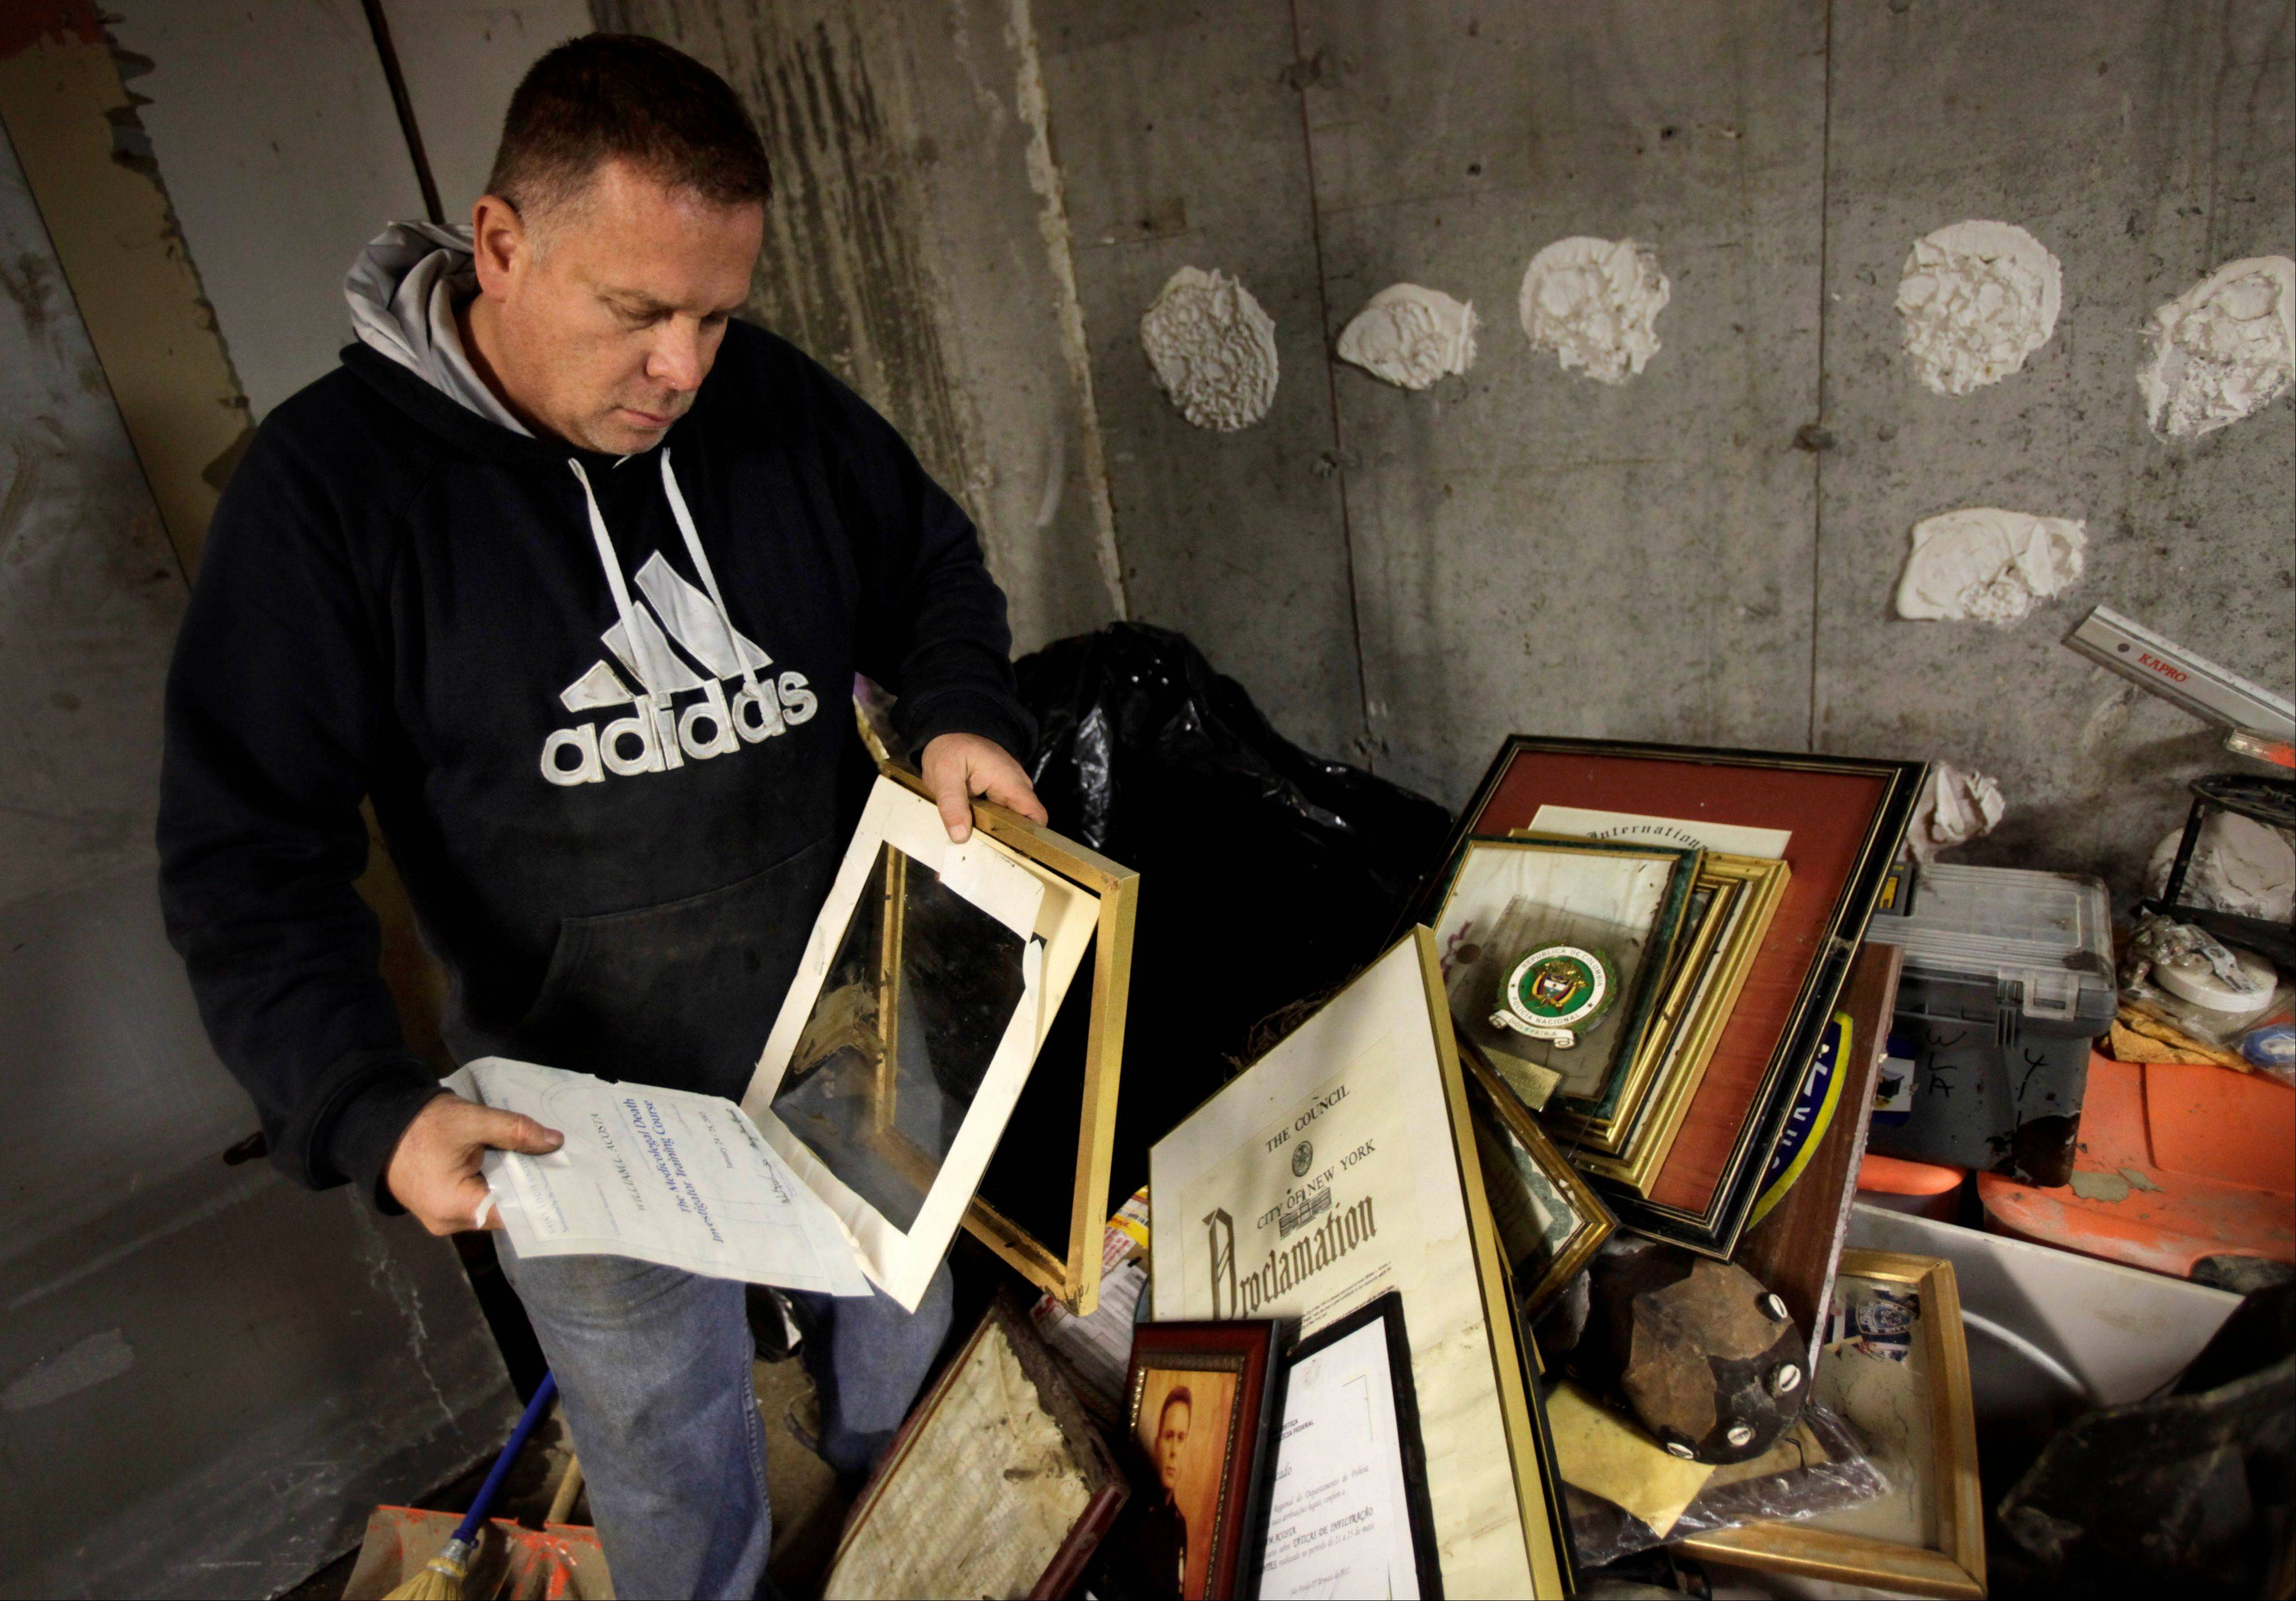 Bill Acosta sorts Tuesday through his numerous diplomas, awards and other important documents in his basement office on the Rockaway Peninsula in Queens, New York. Acosta, who is a veteran and has a long record of government service, is upset that FEMA or any other government agency was unable to offer him financial assistance.